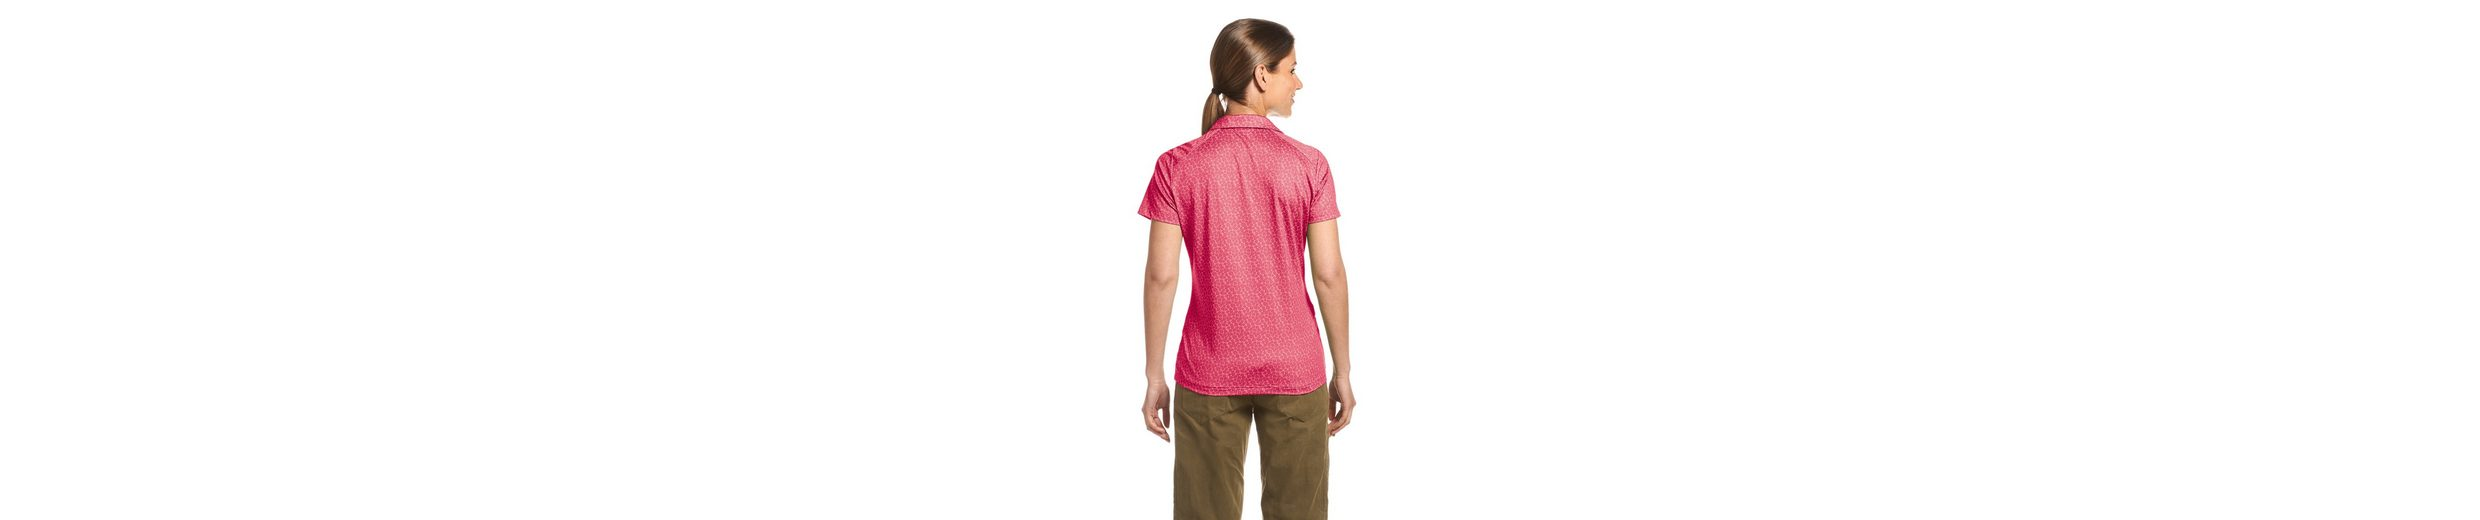 Maier Sports Funktionsshirt Pandy W Low-Cost Online LUVYP73L2